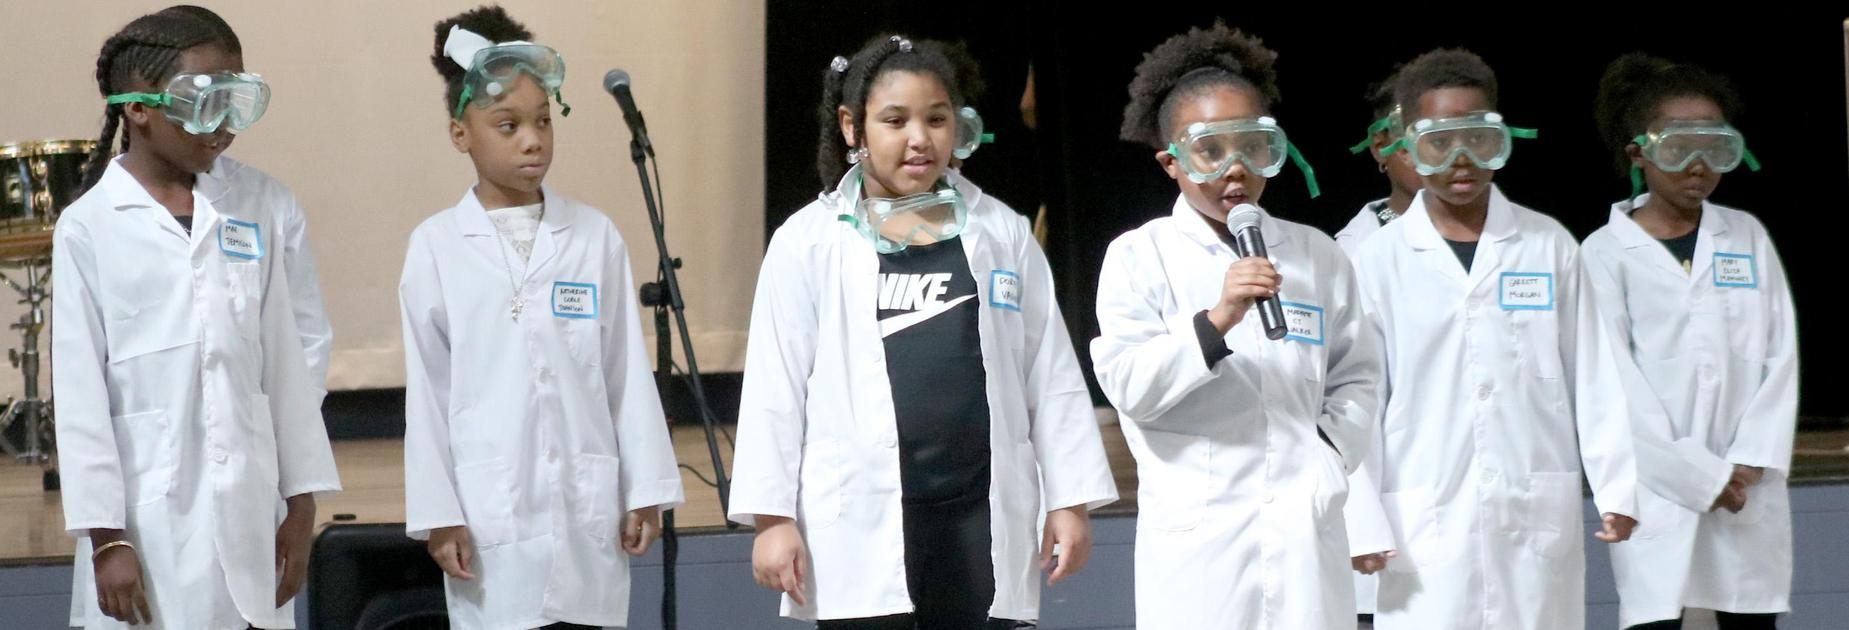 KIPP Morial students dress as famous black scientists